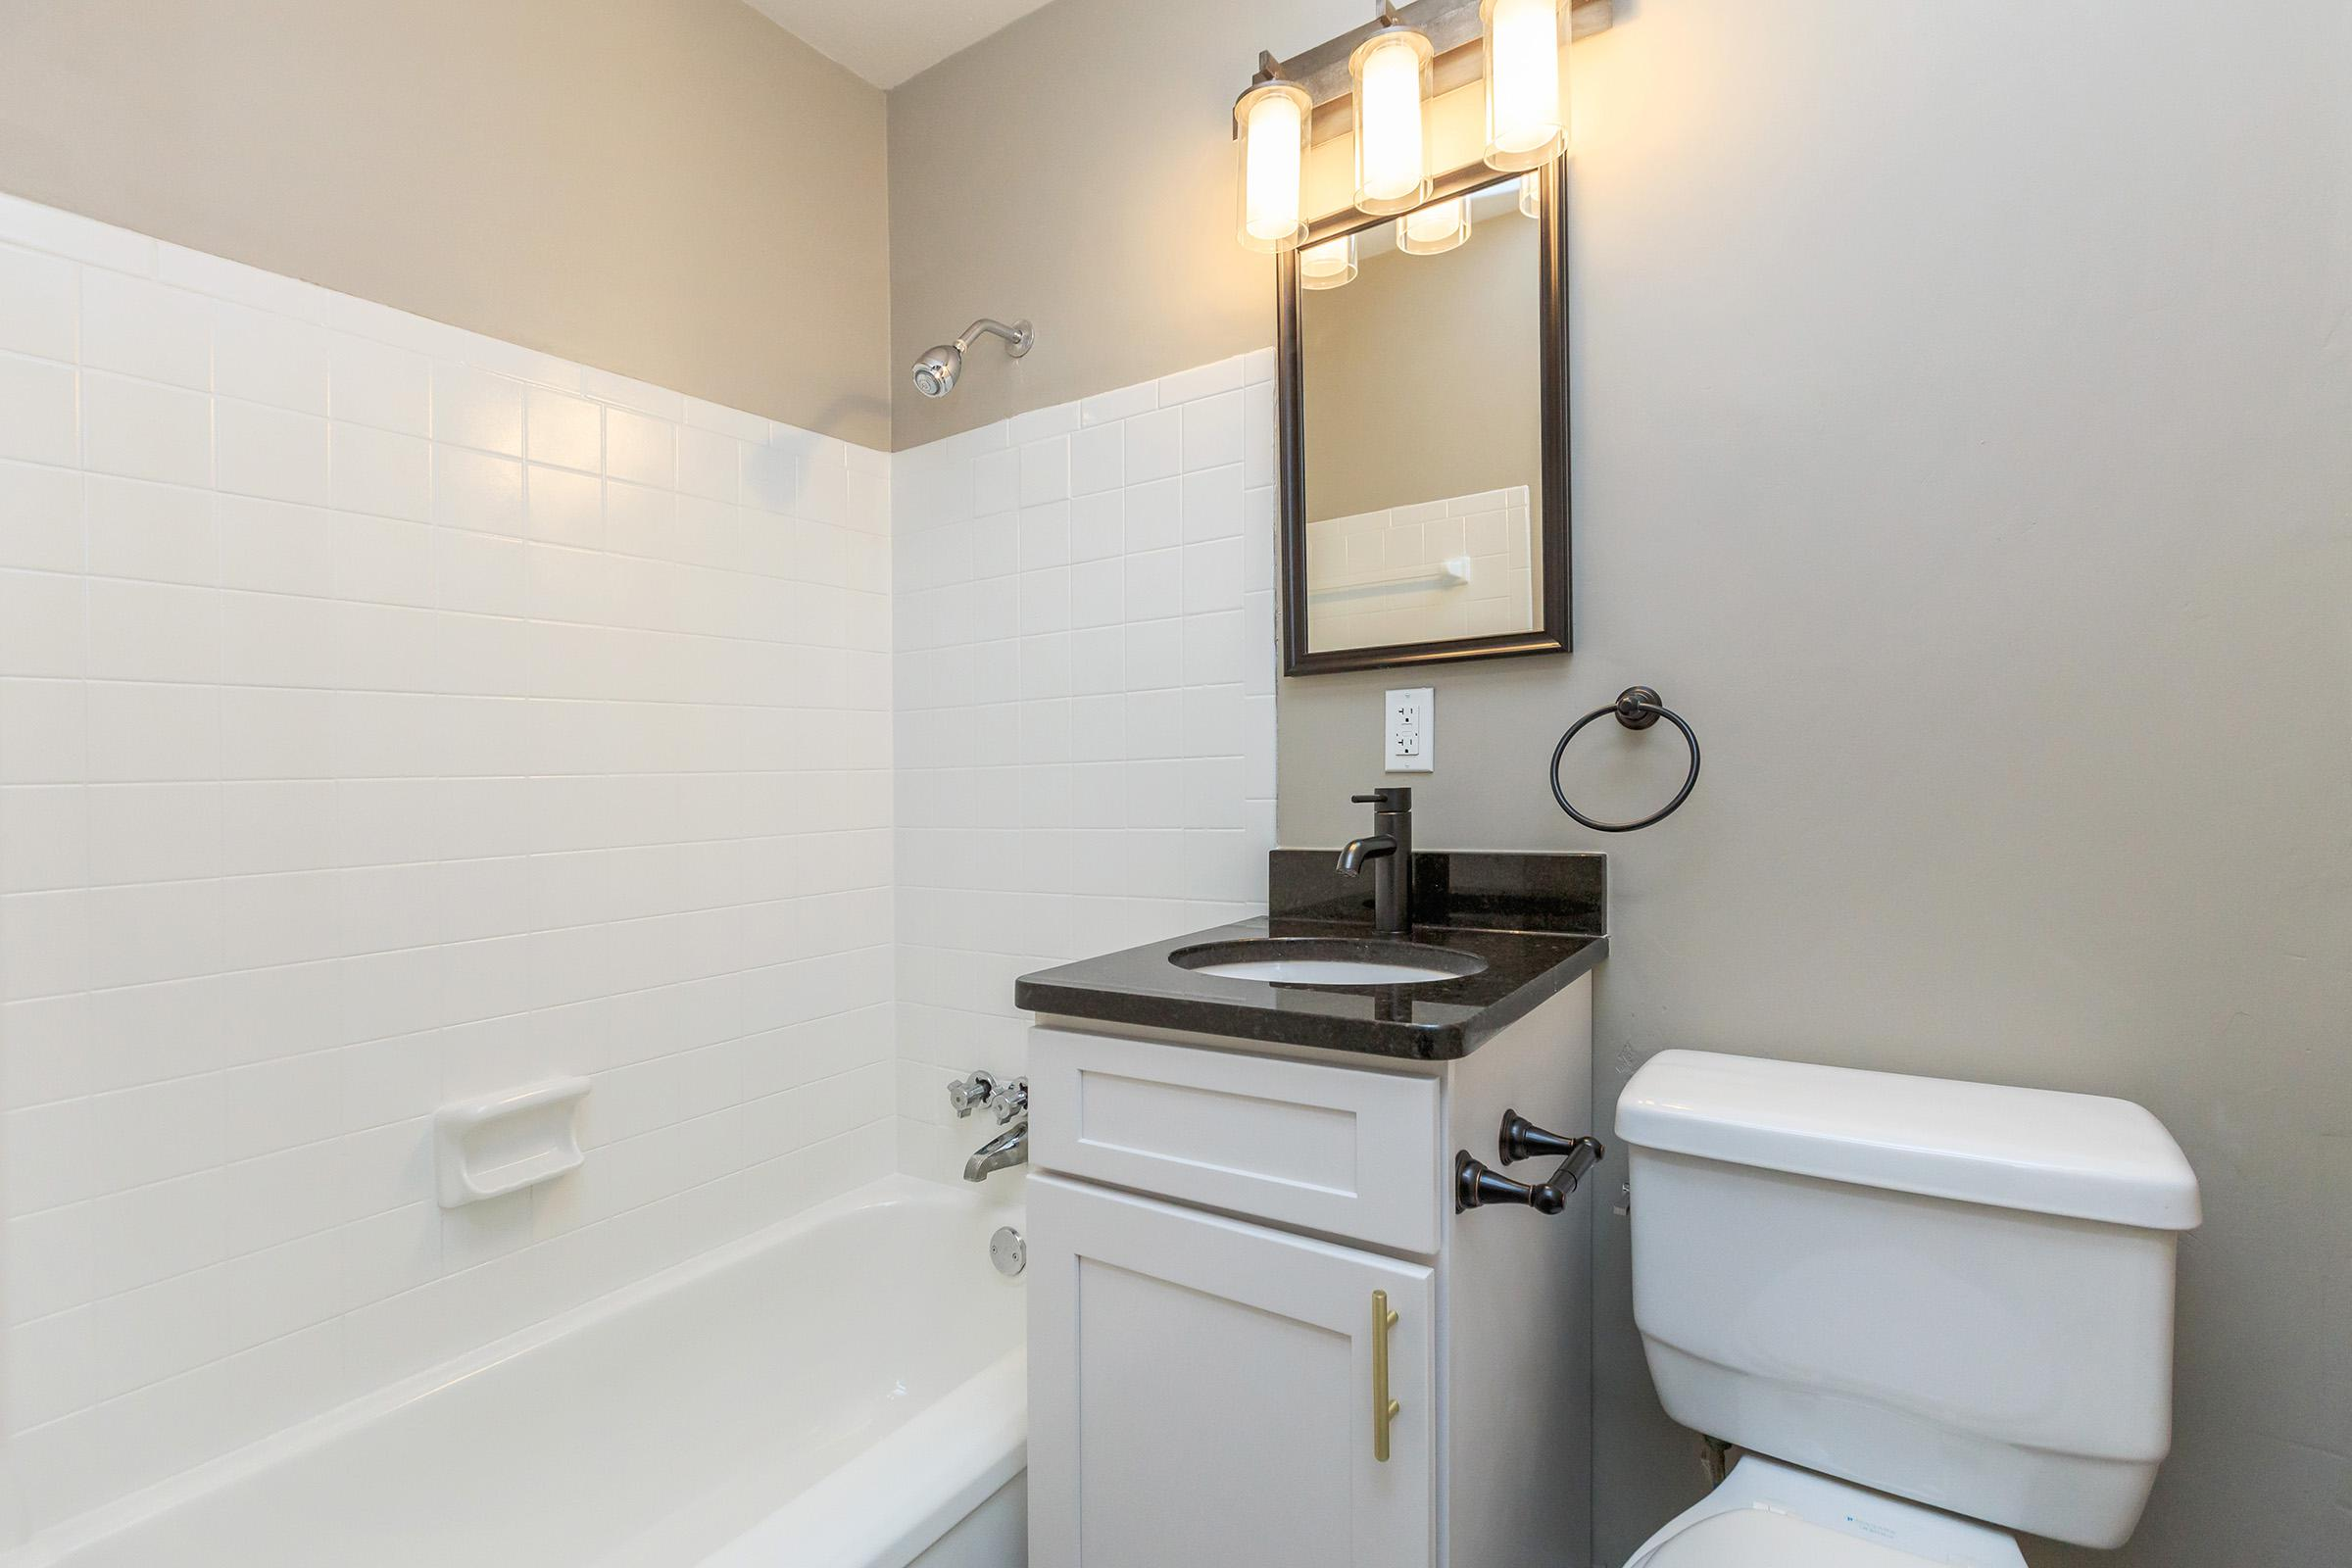 Modern Bathroom at The Lincoln at Colony House in Murfreesboro, TN